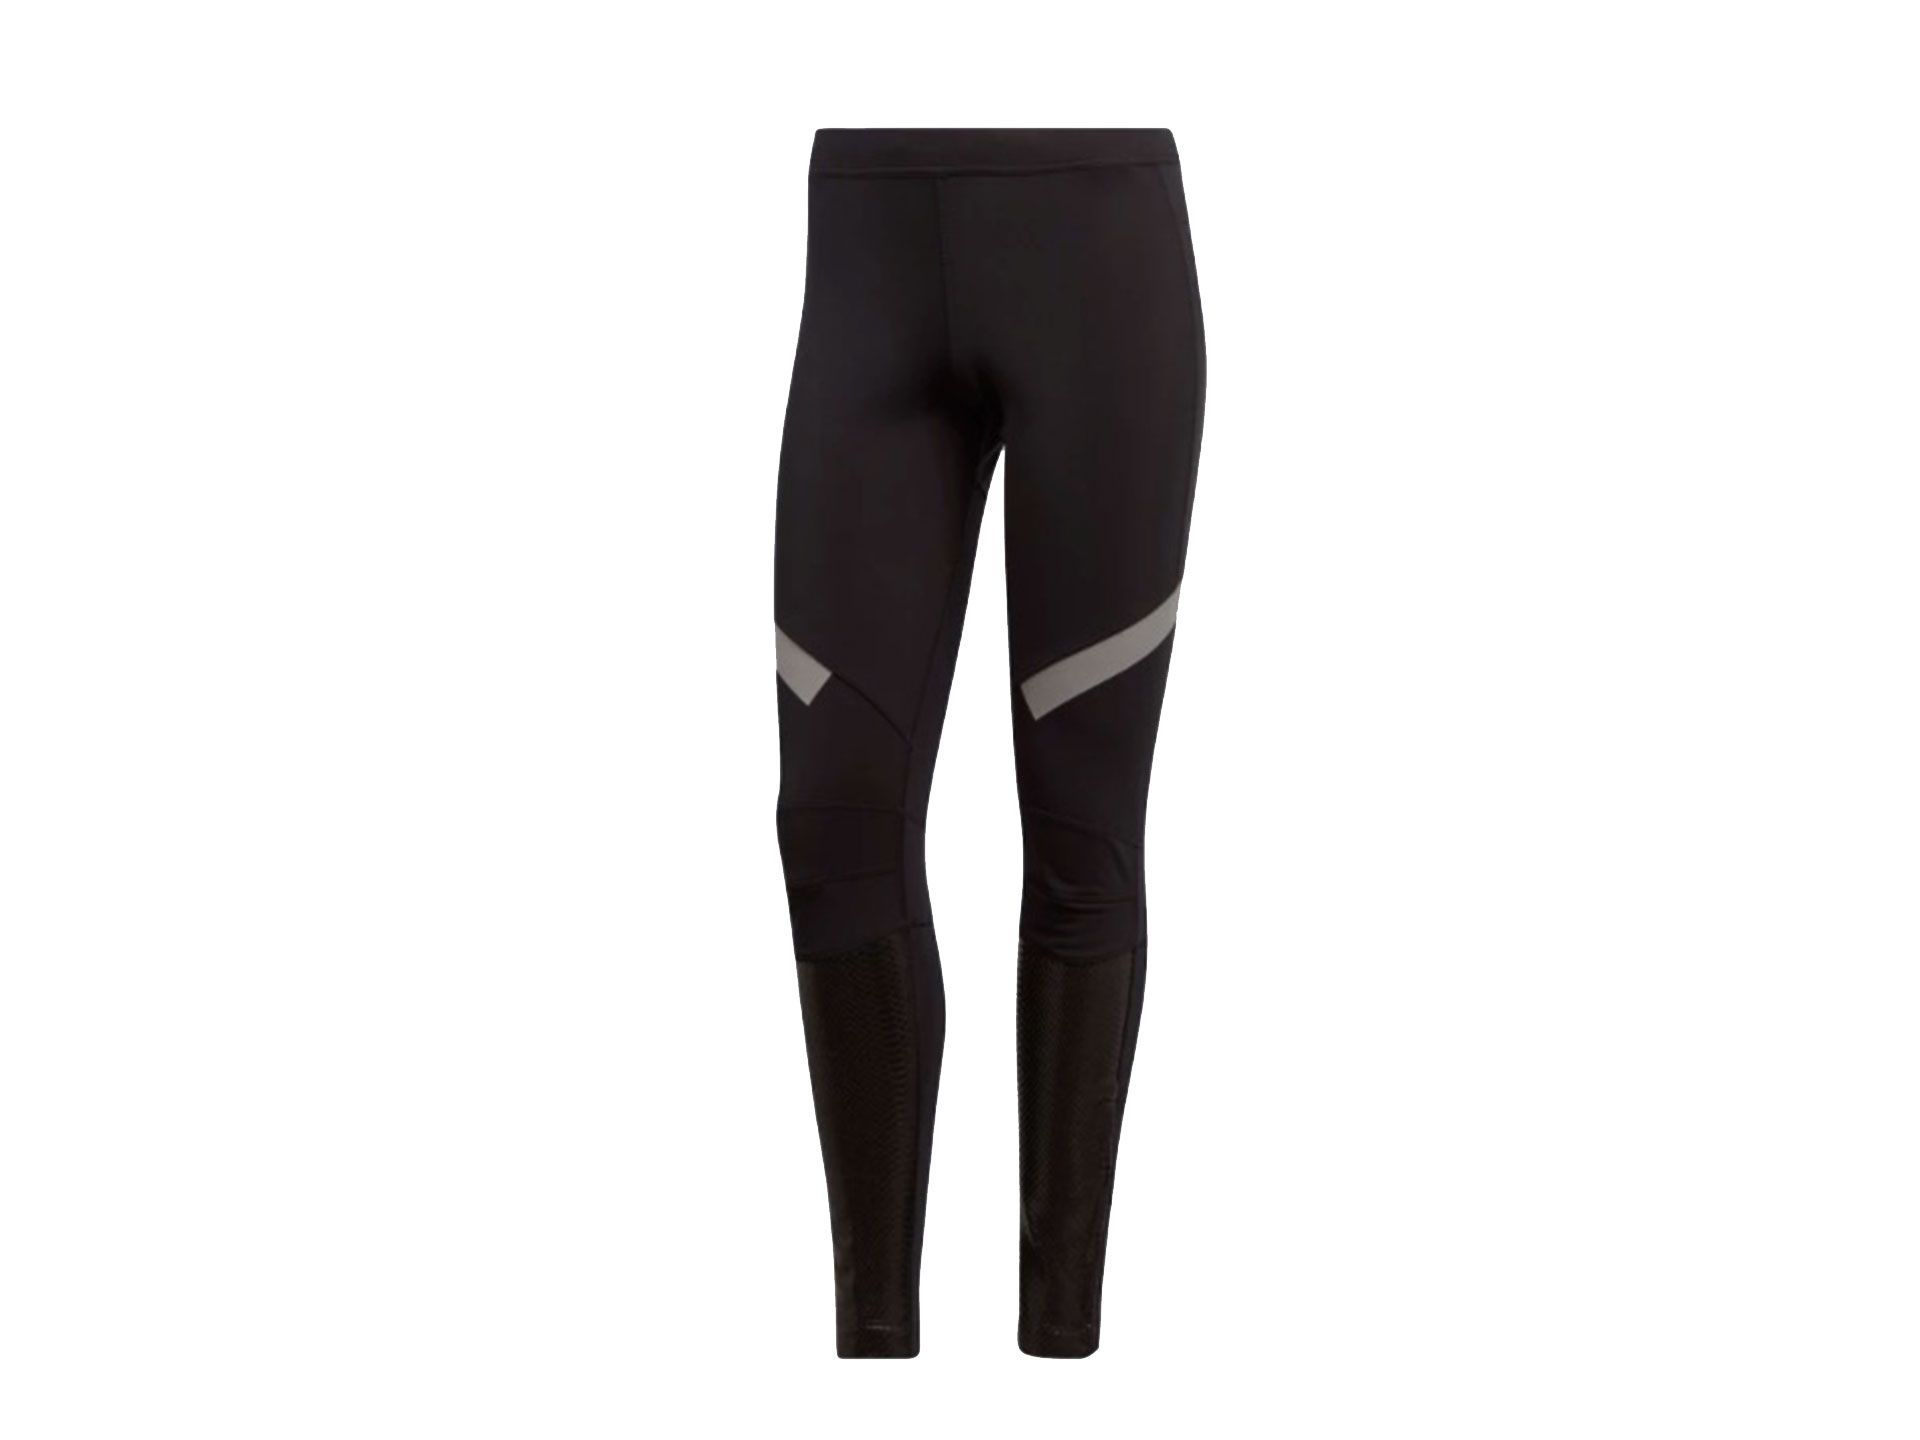 57c7972b4800e 9 Pairs of Gym Leggings With Pockets To Buy ASAP